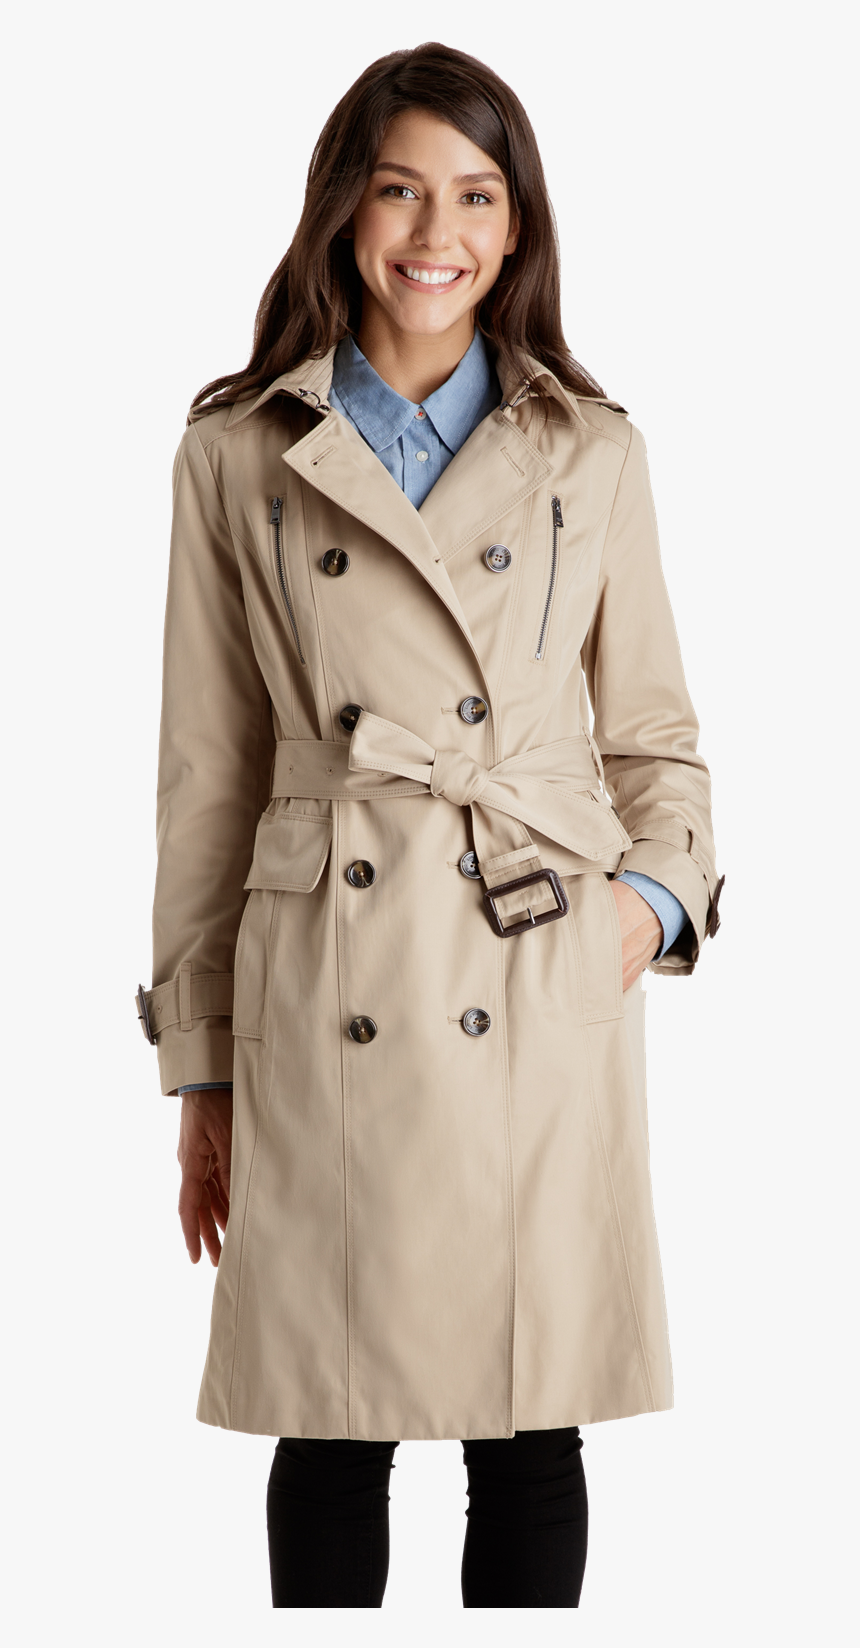 Classic Double Ted Trench Coat, Classic London Fog Trench Coat